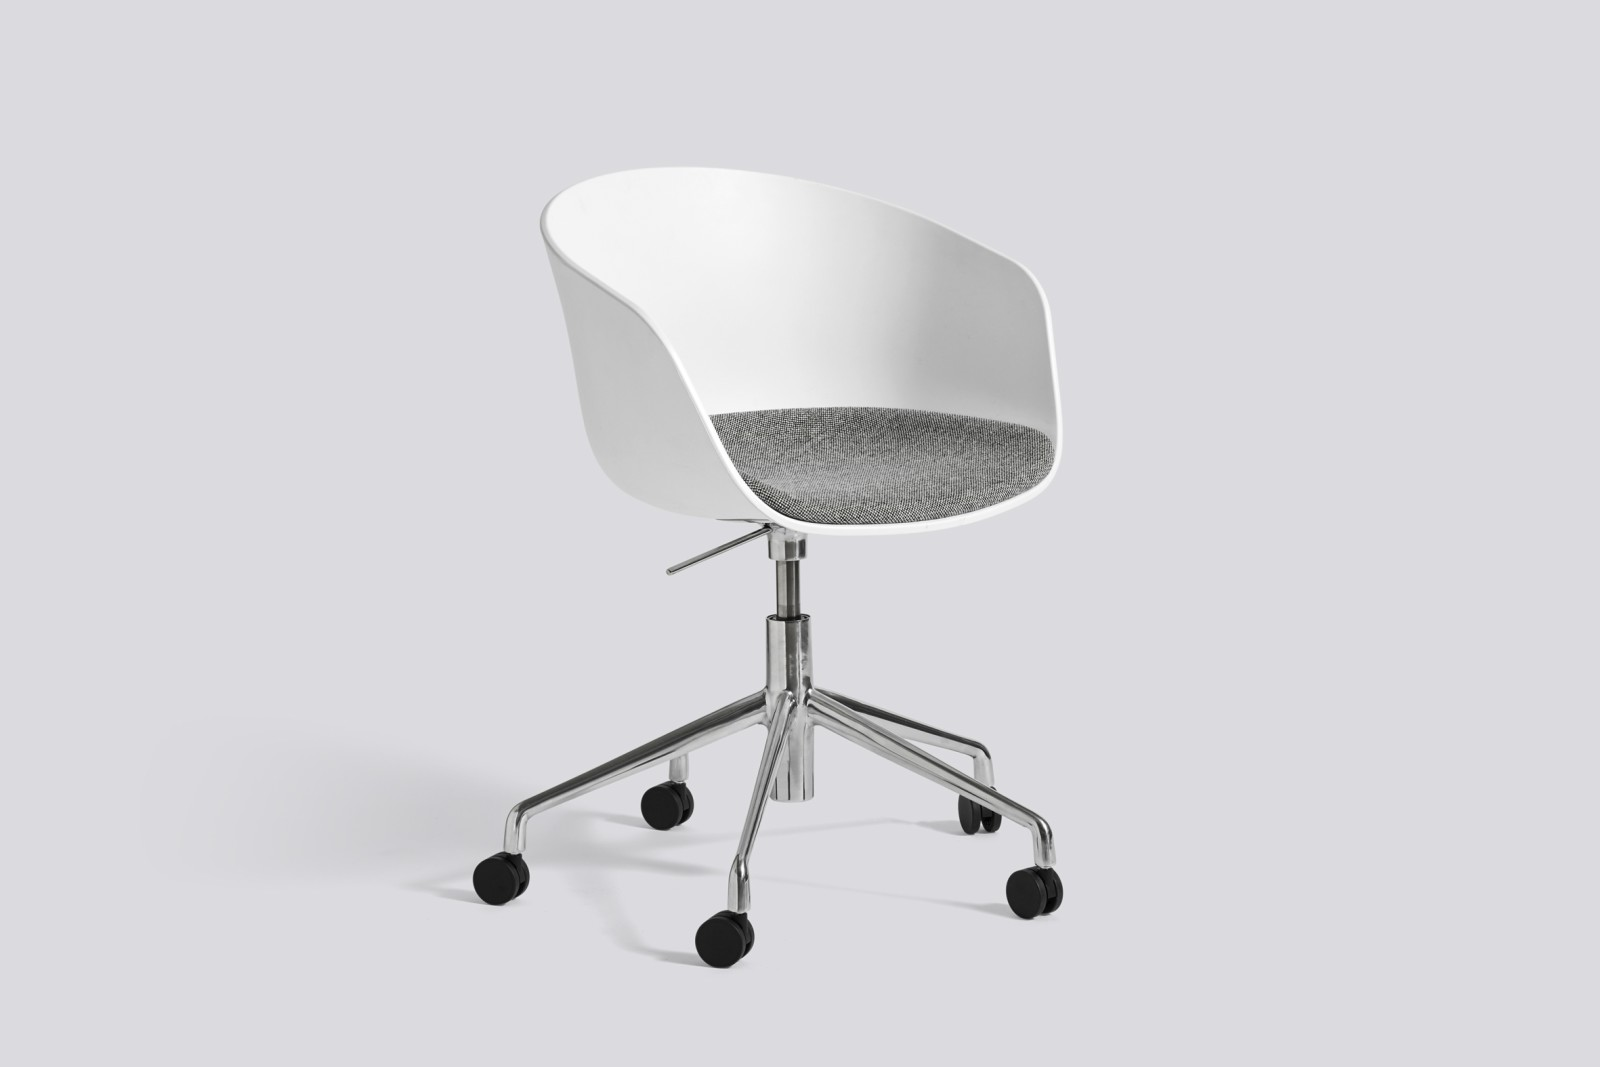 About A Chair AAC52 with fixed seat cushion Surface by Hay 120, Black, White Powder Coated Steel